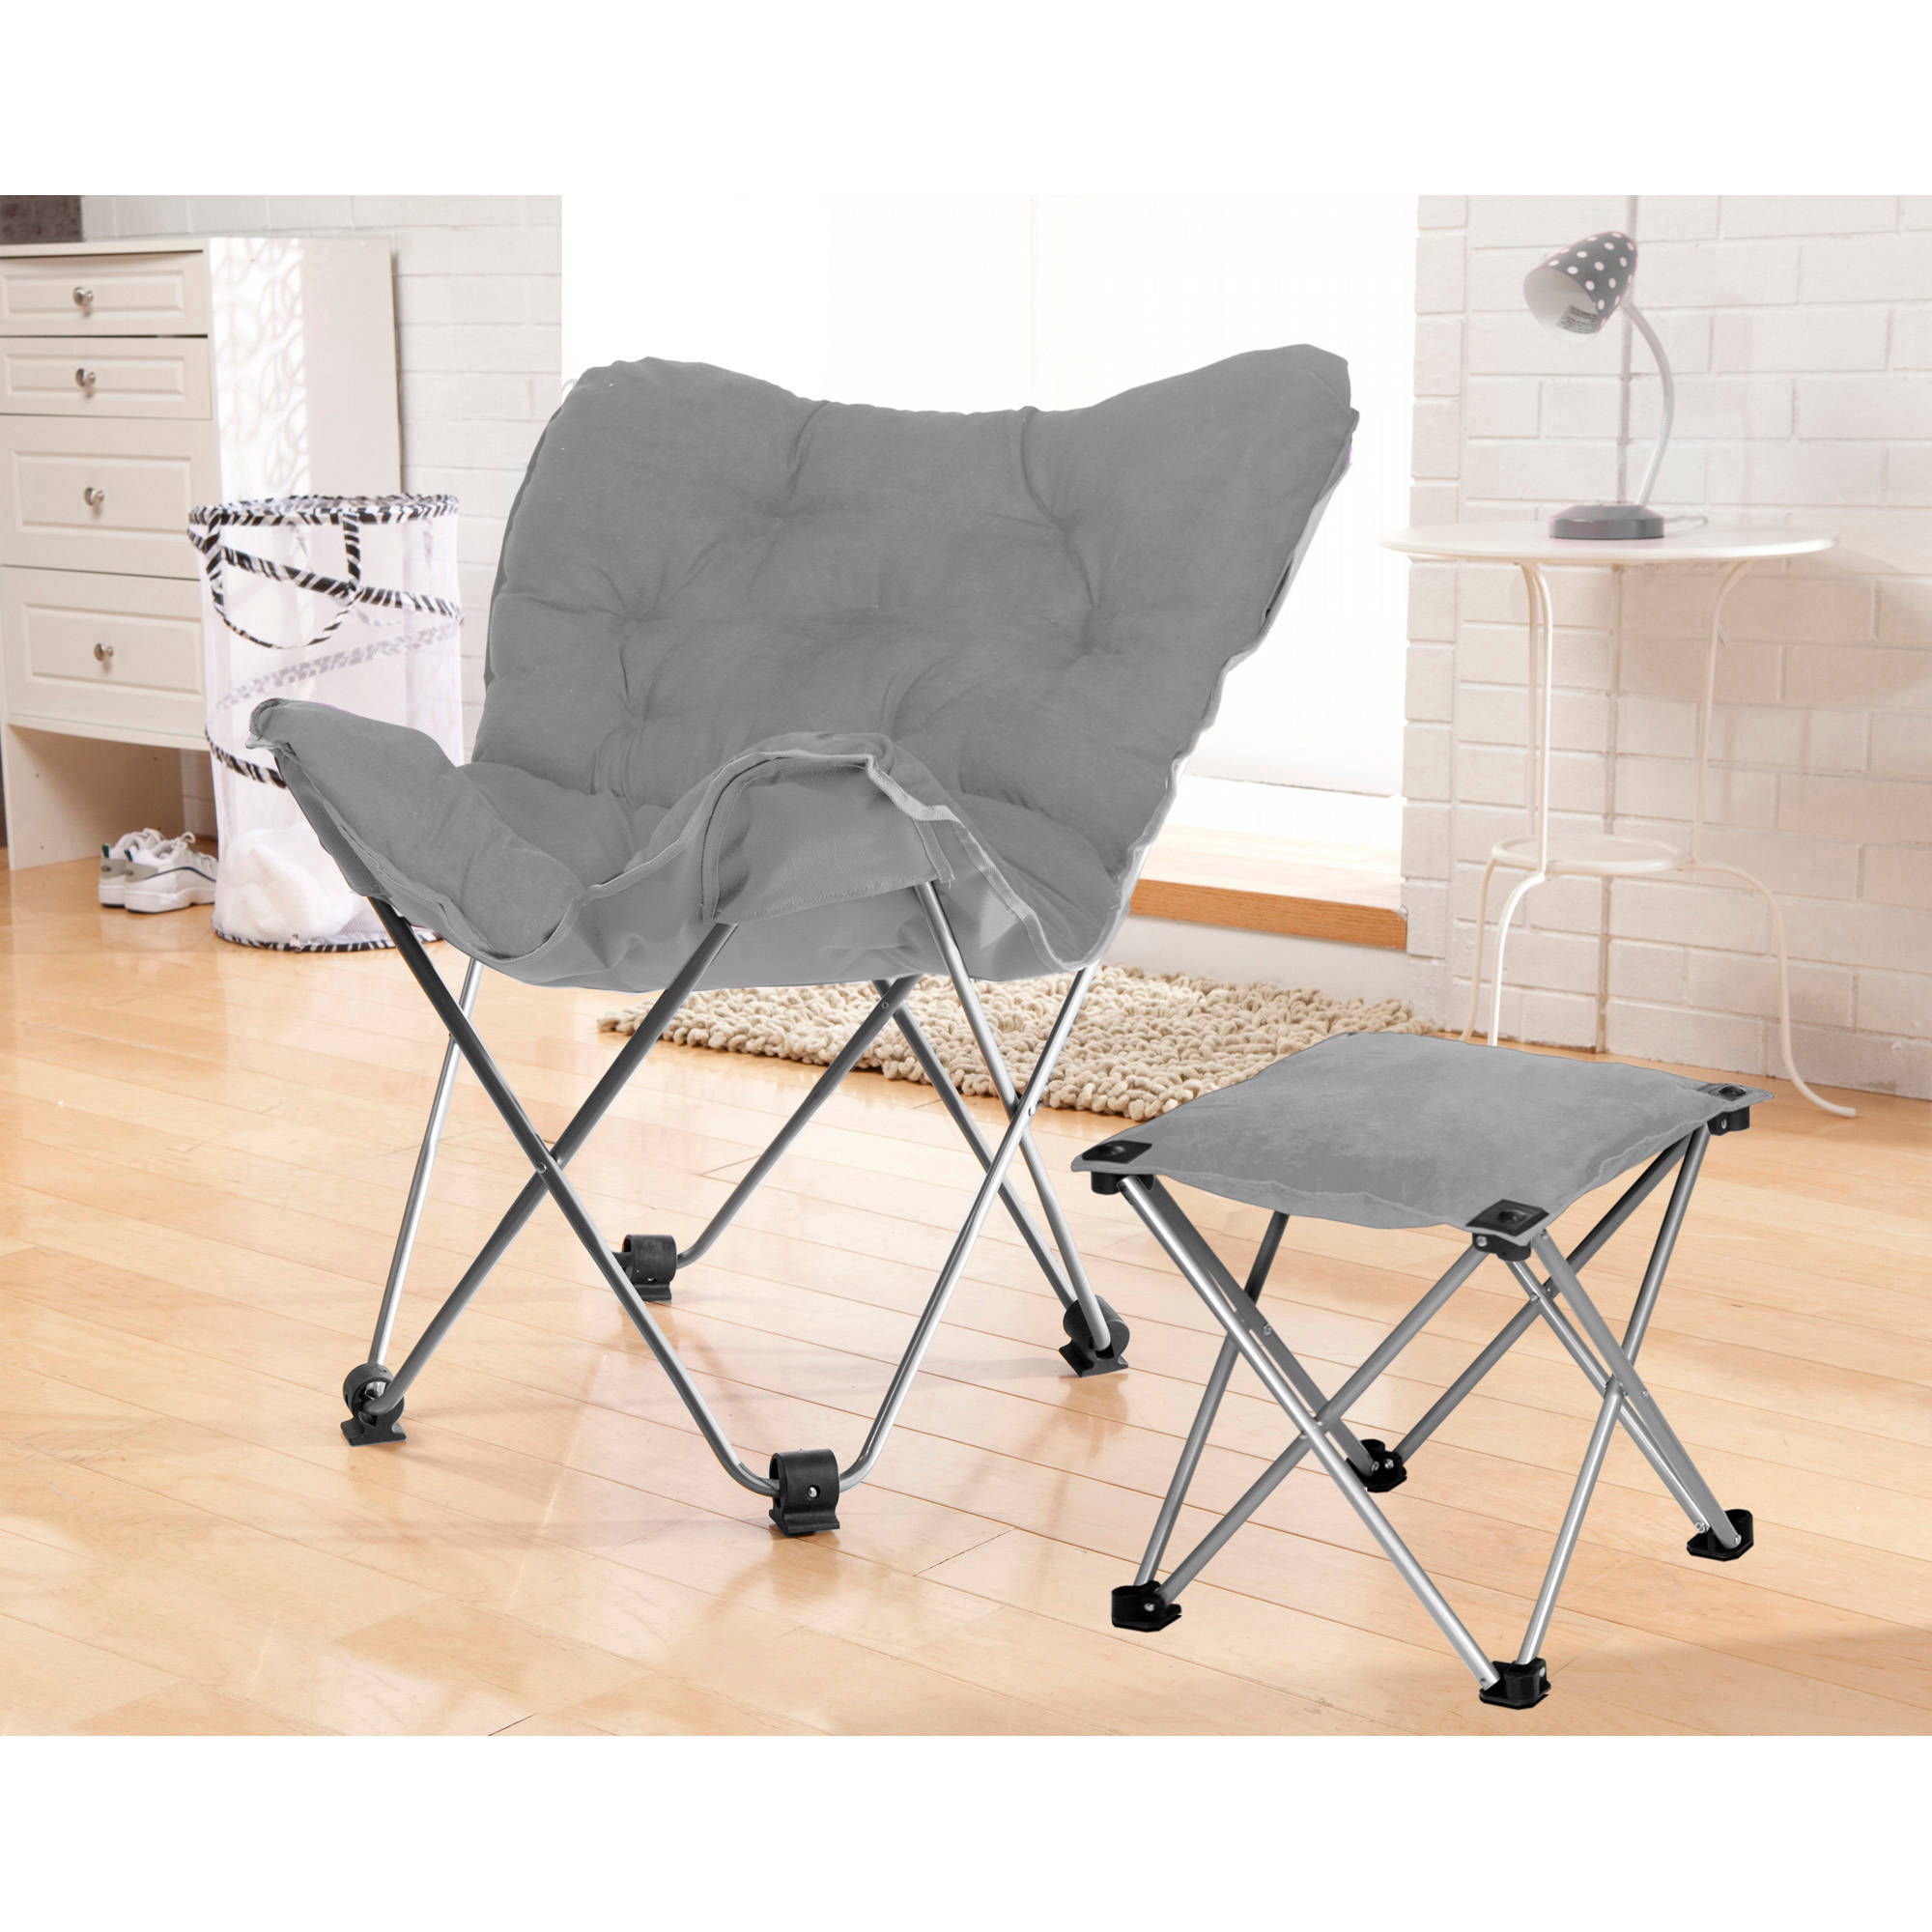 your zone butterfly chair with foot rest stool, multiple colors